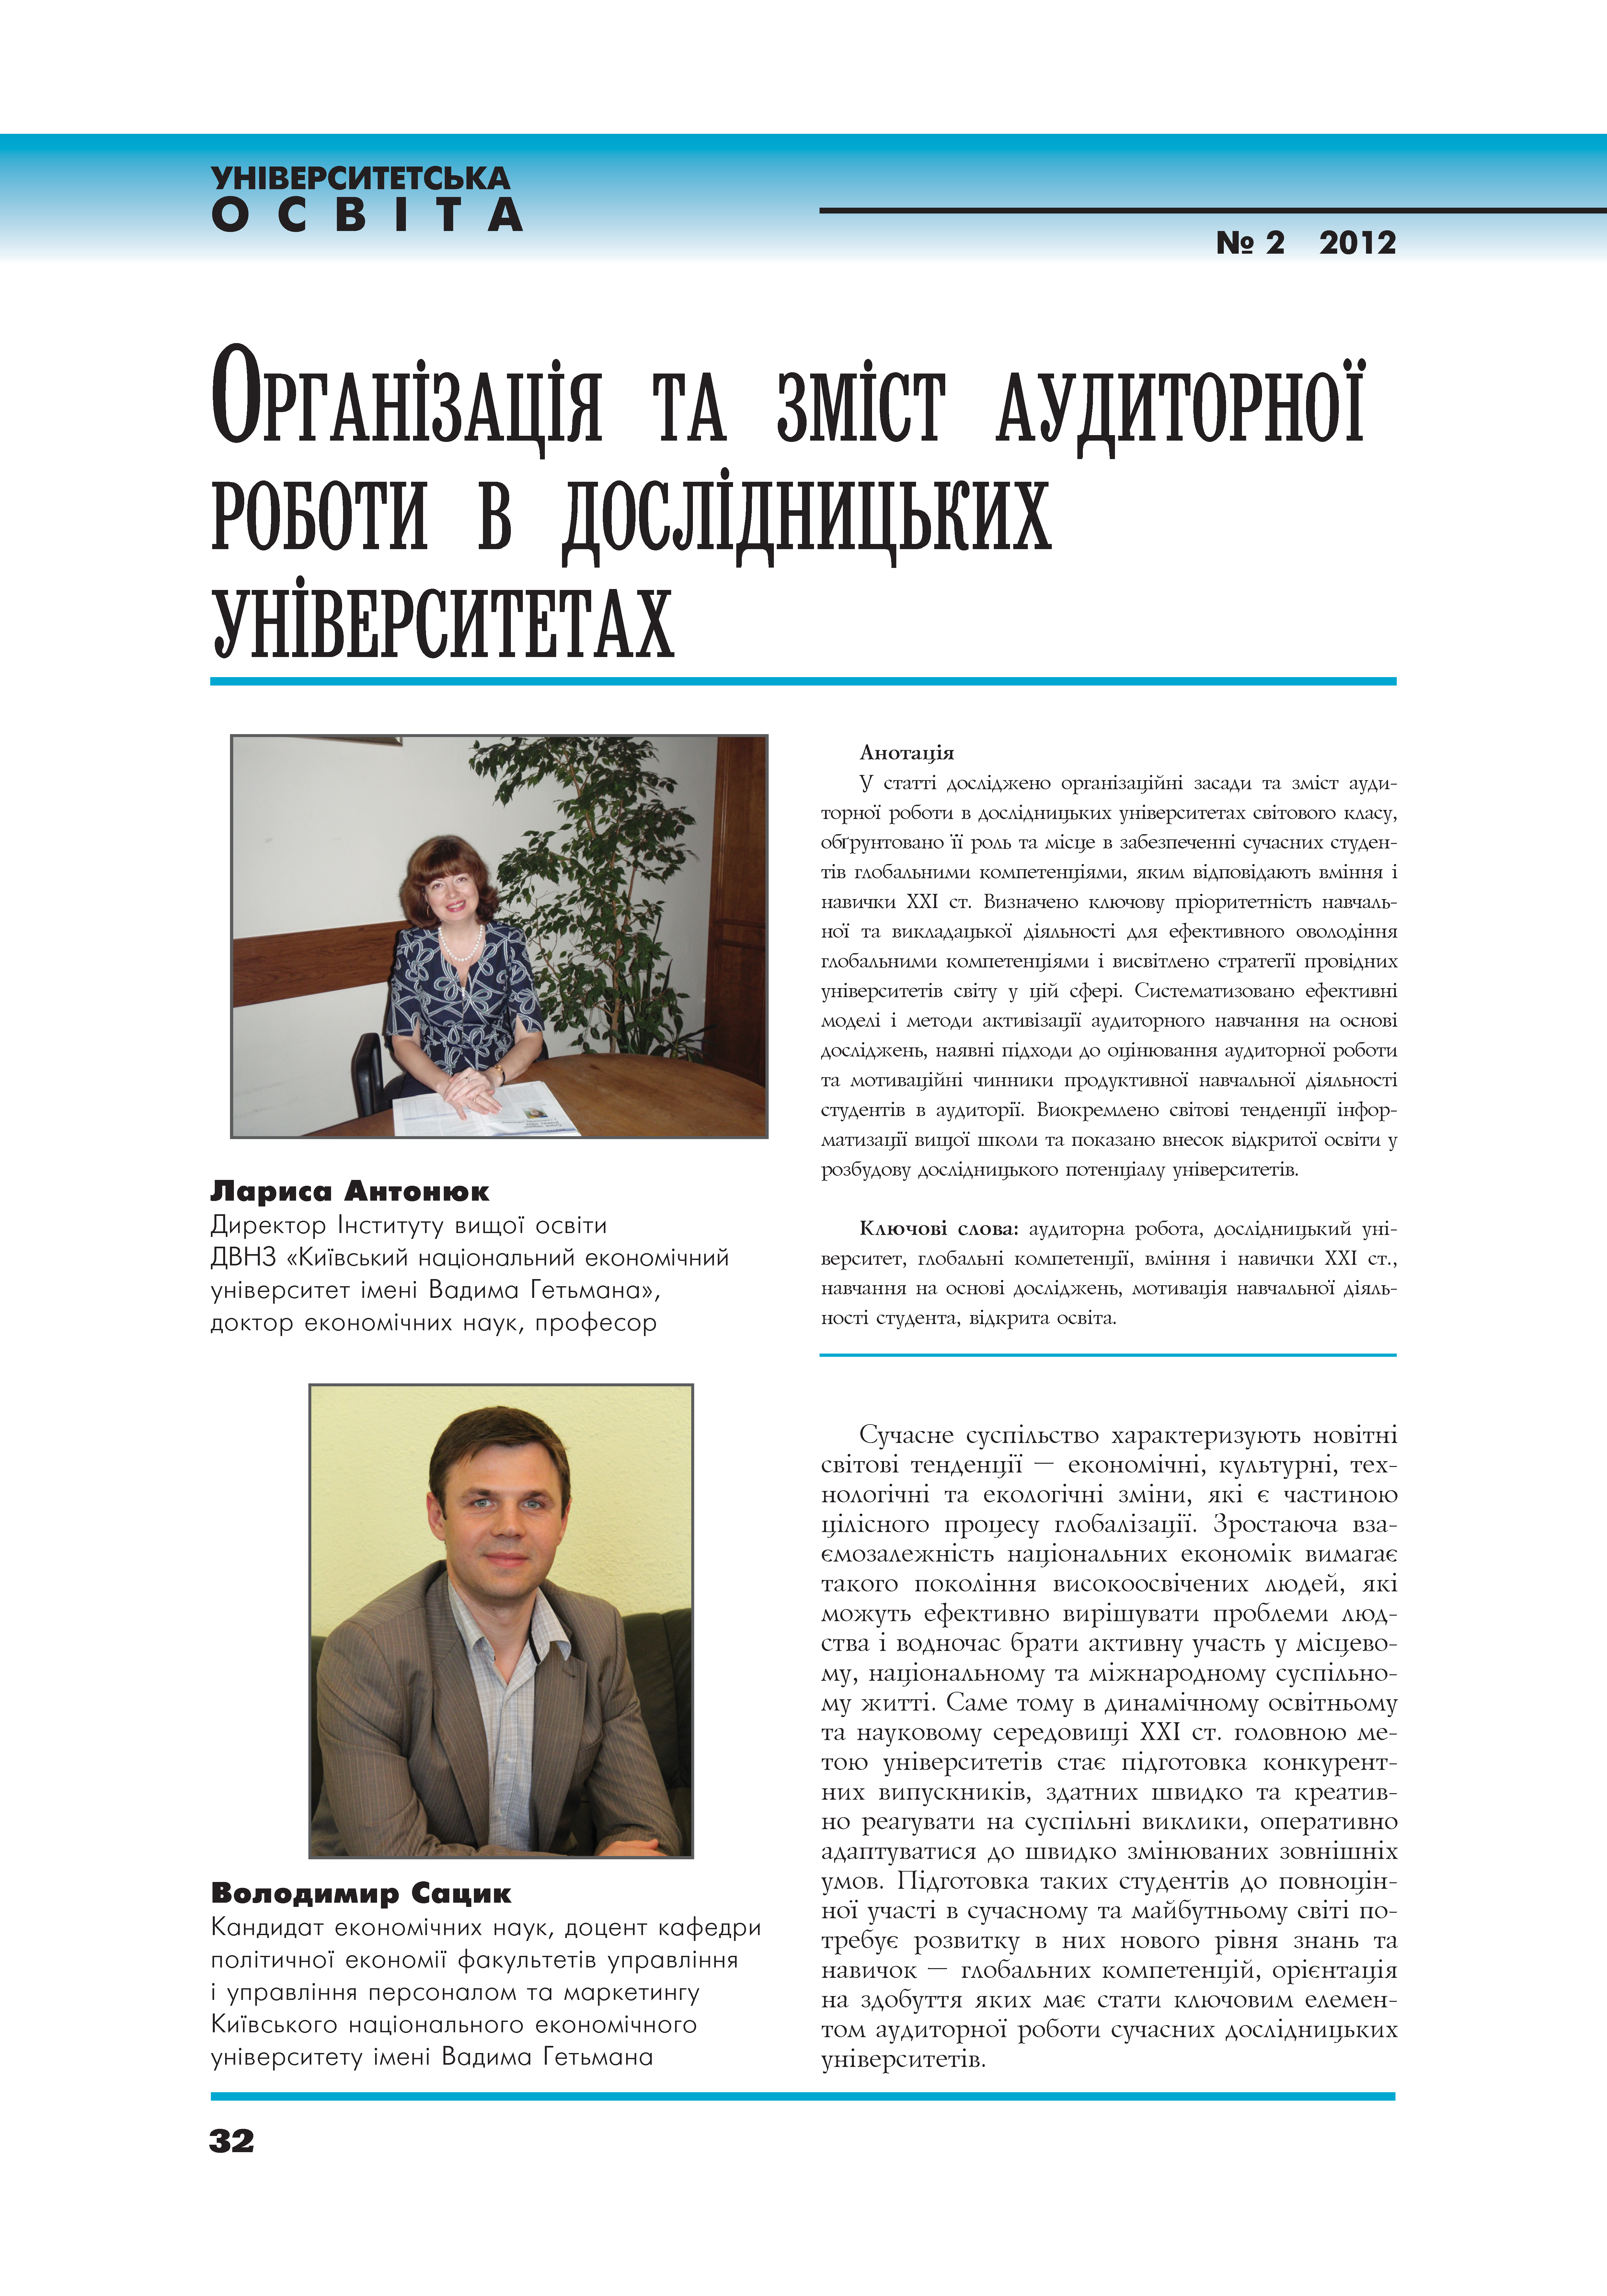 Pages from Antonuik_Satsyk_ukr